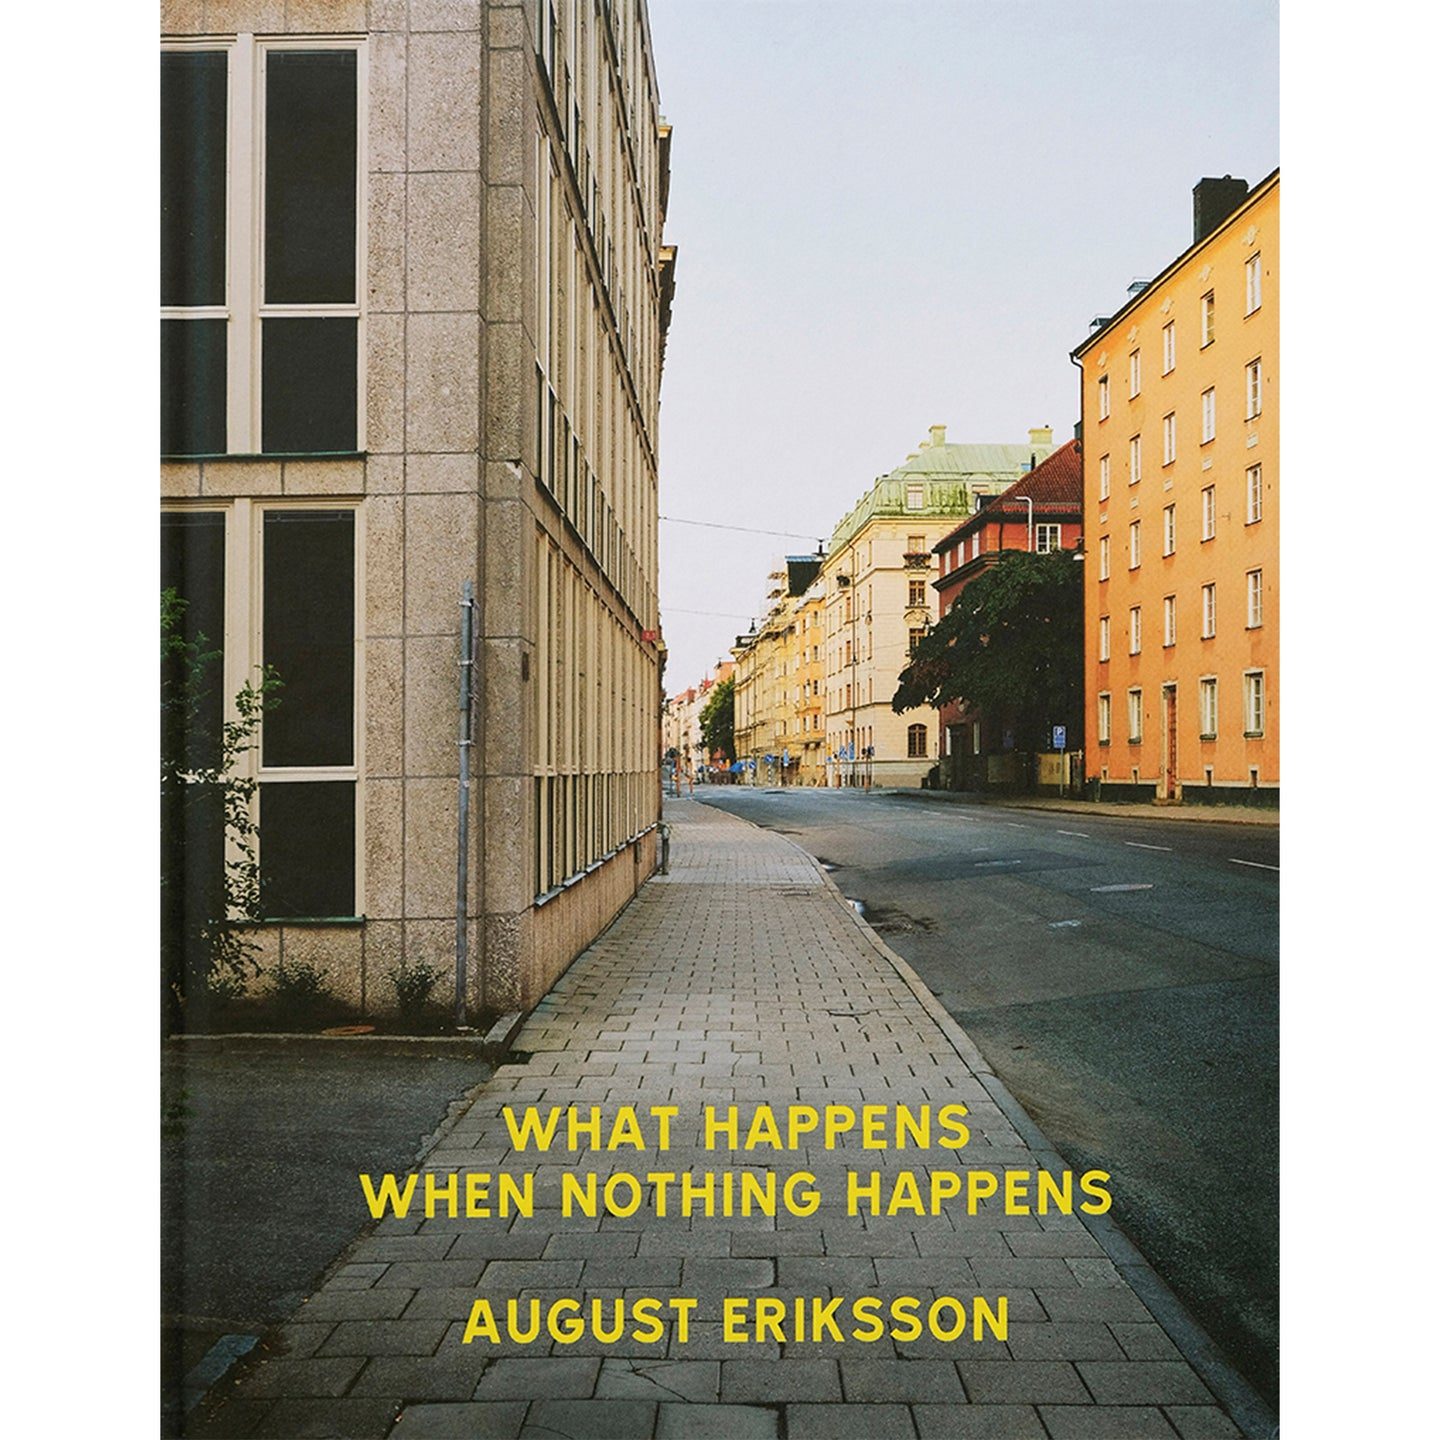 AUGUST ERIKSSON: WHAT HAPPENS WHEN NOTHING HAPPENS